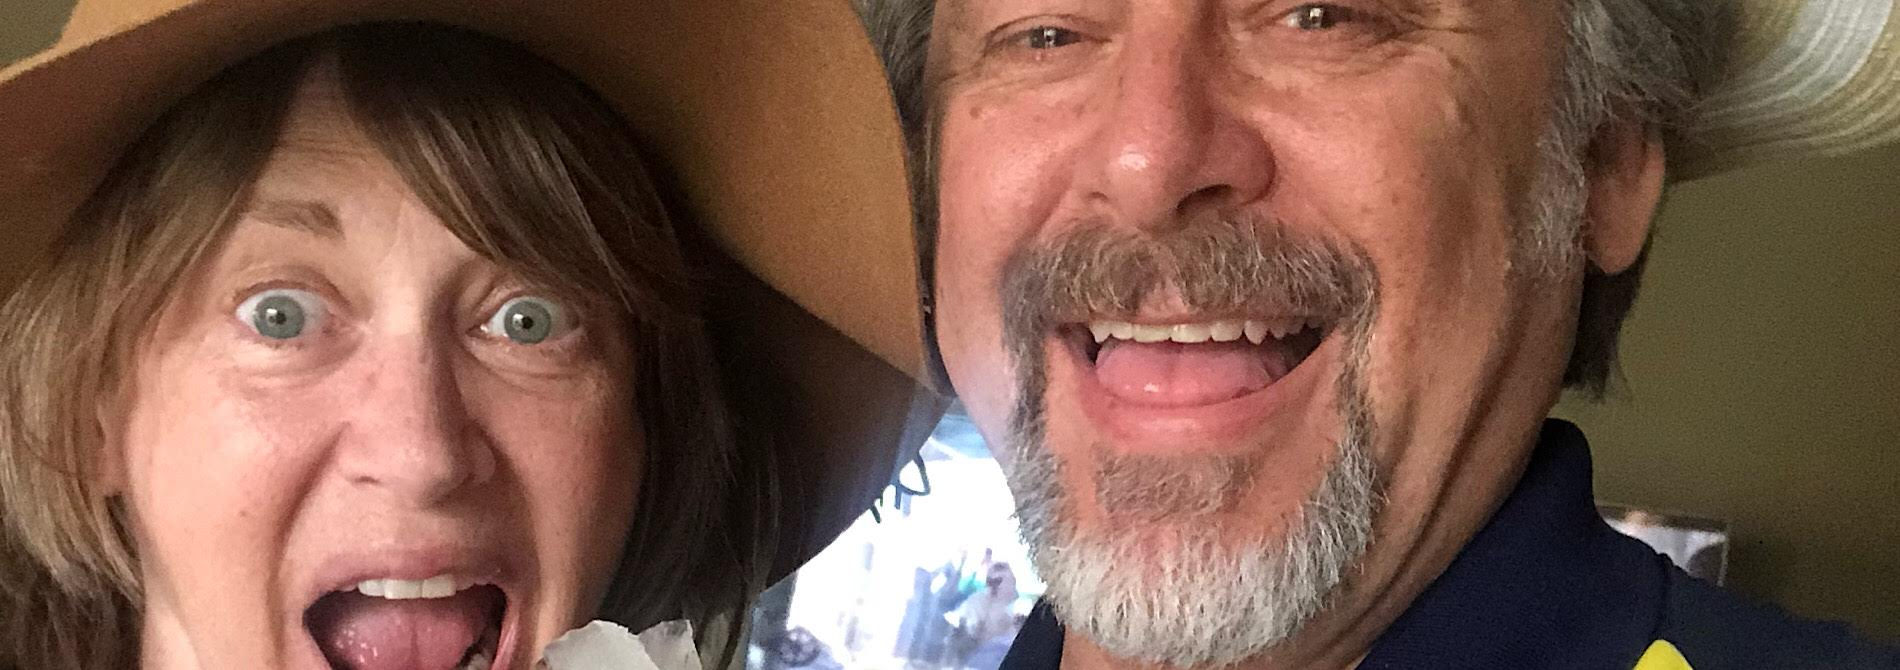 man with woman open mouth wearing floppy hat